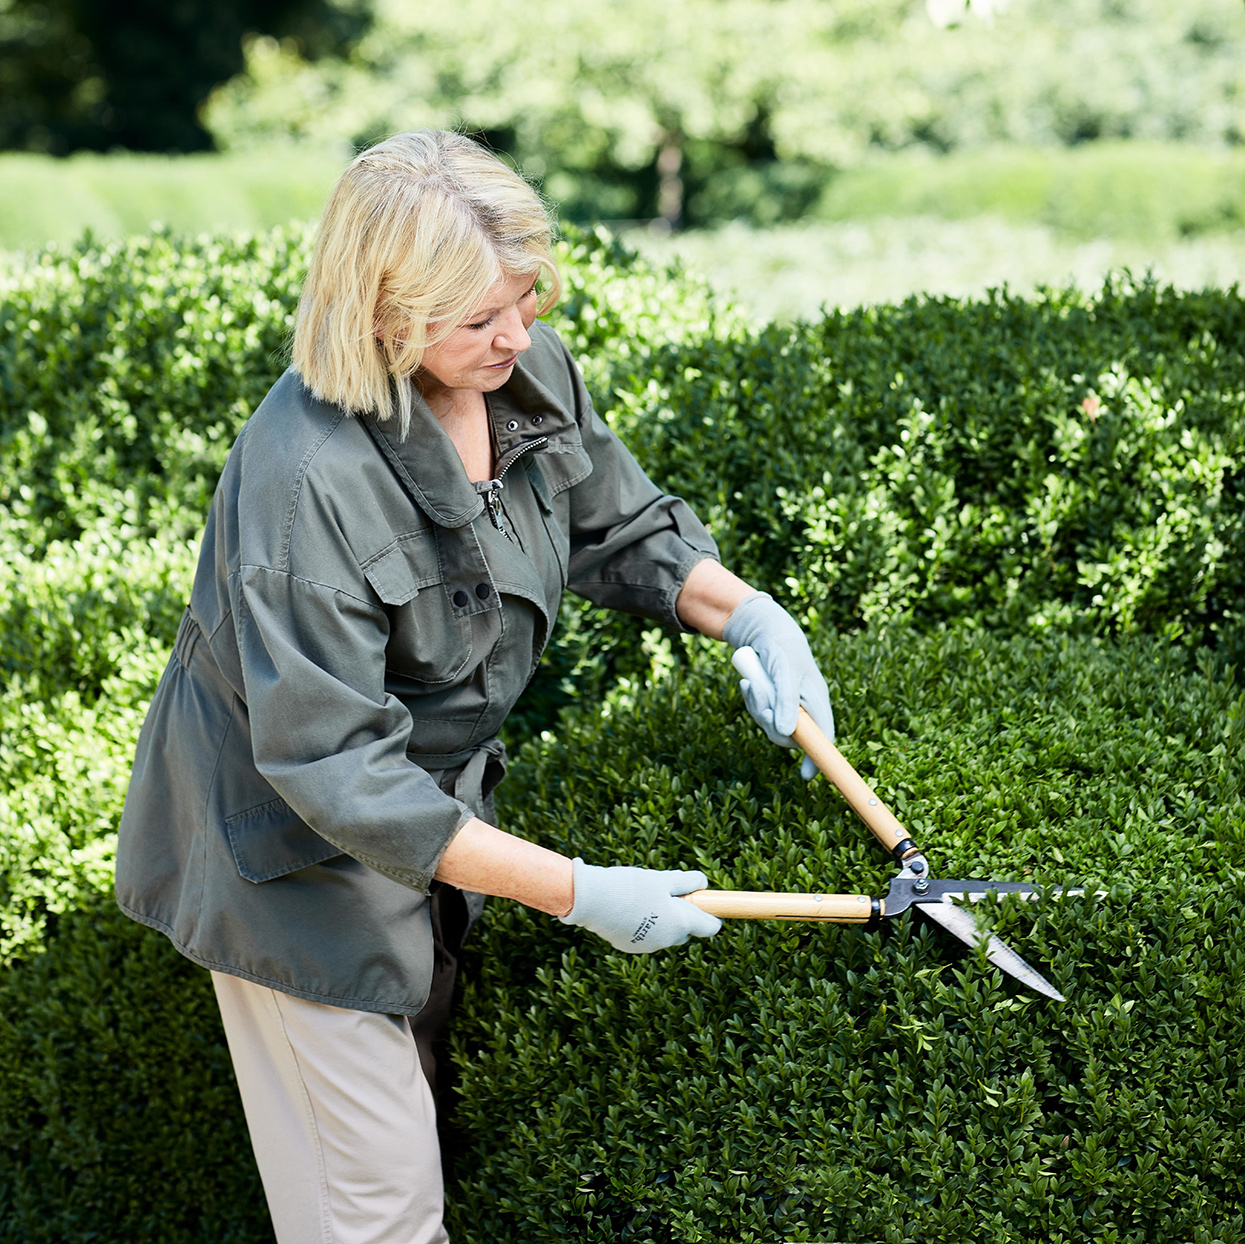 martha pruning hedges